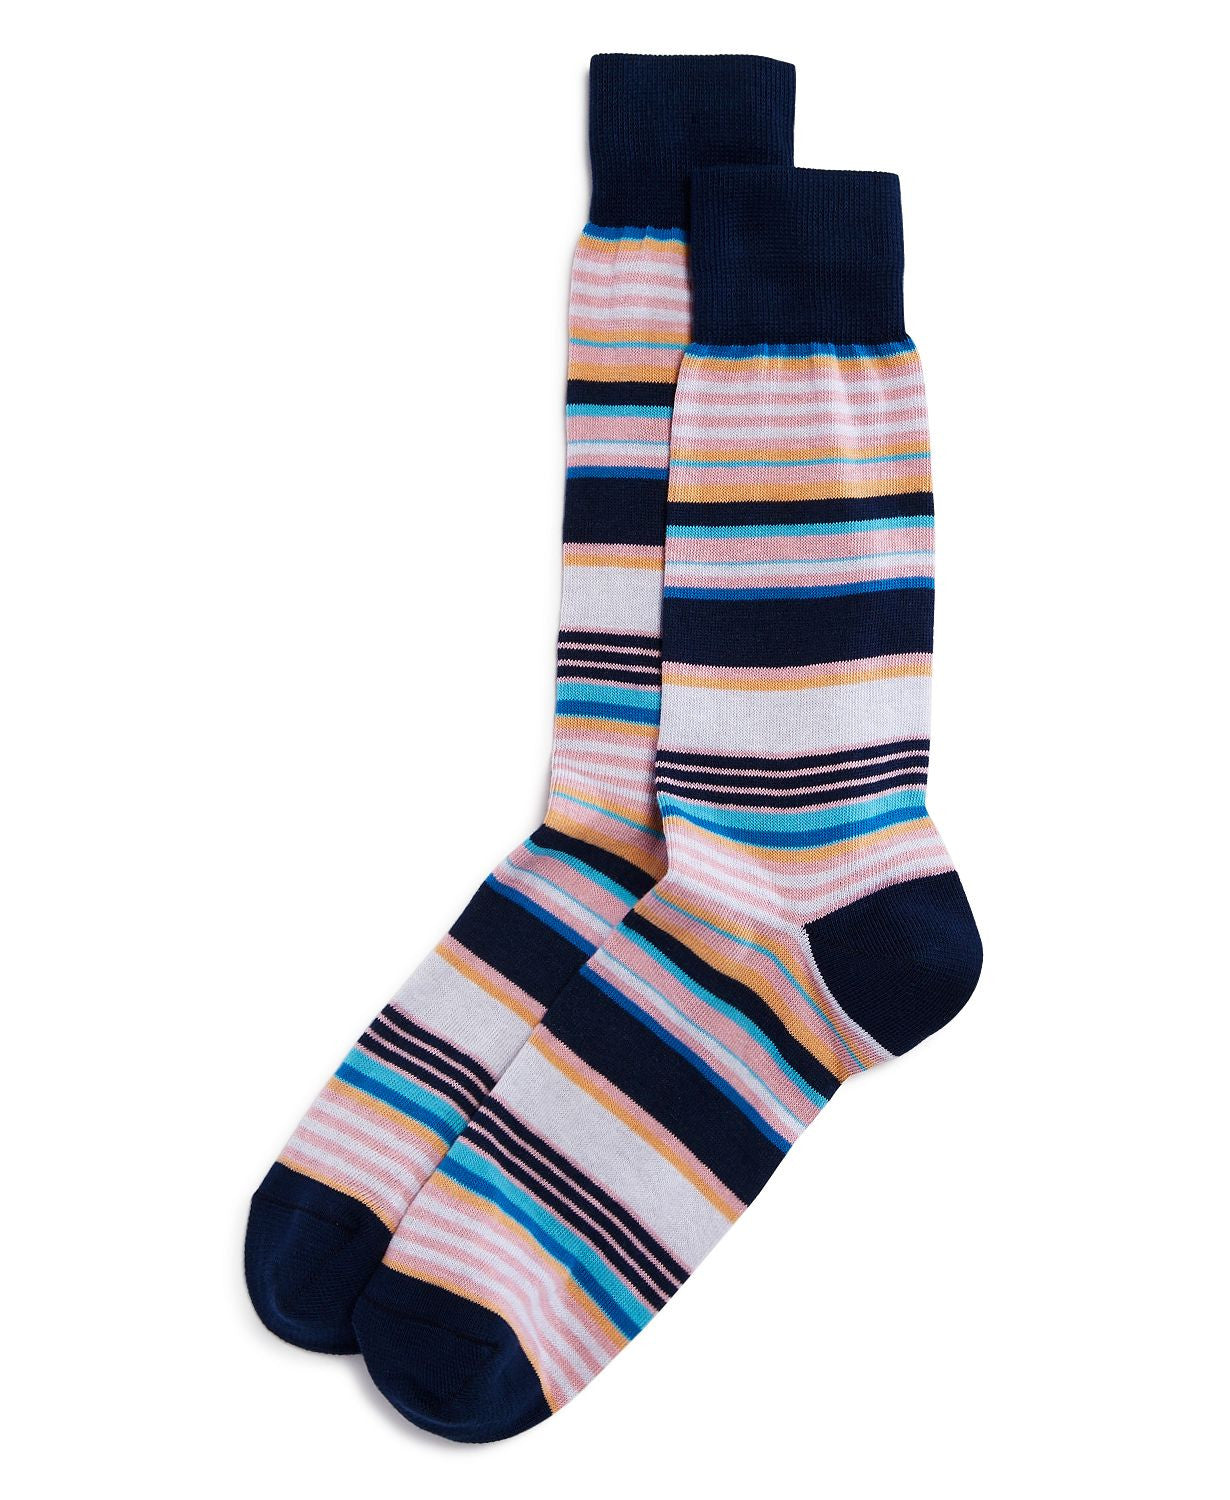 The Men's Store Striped Socks Navy